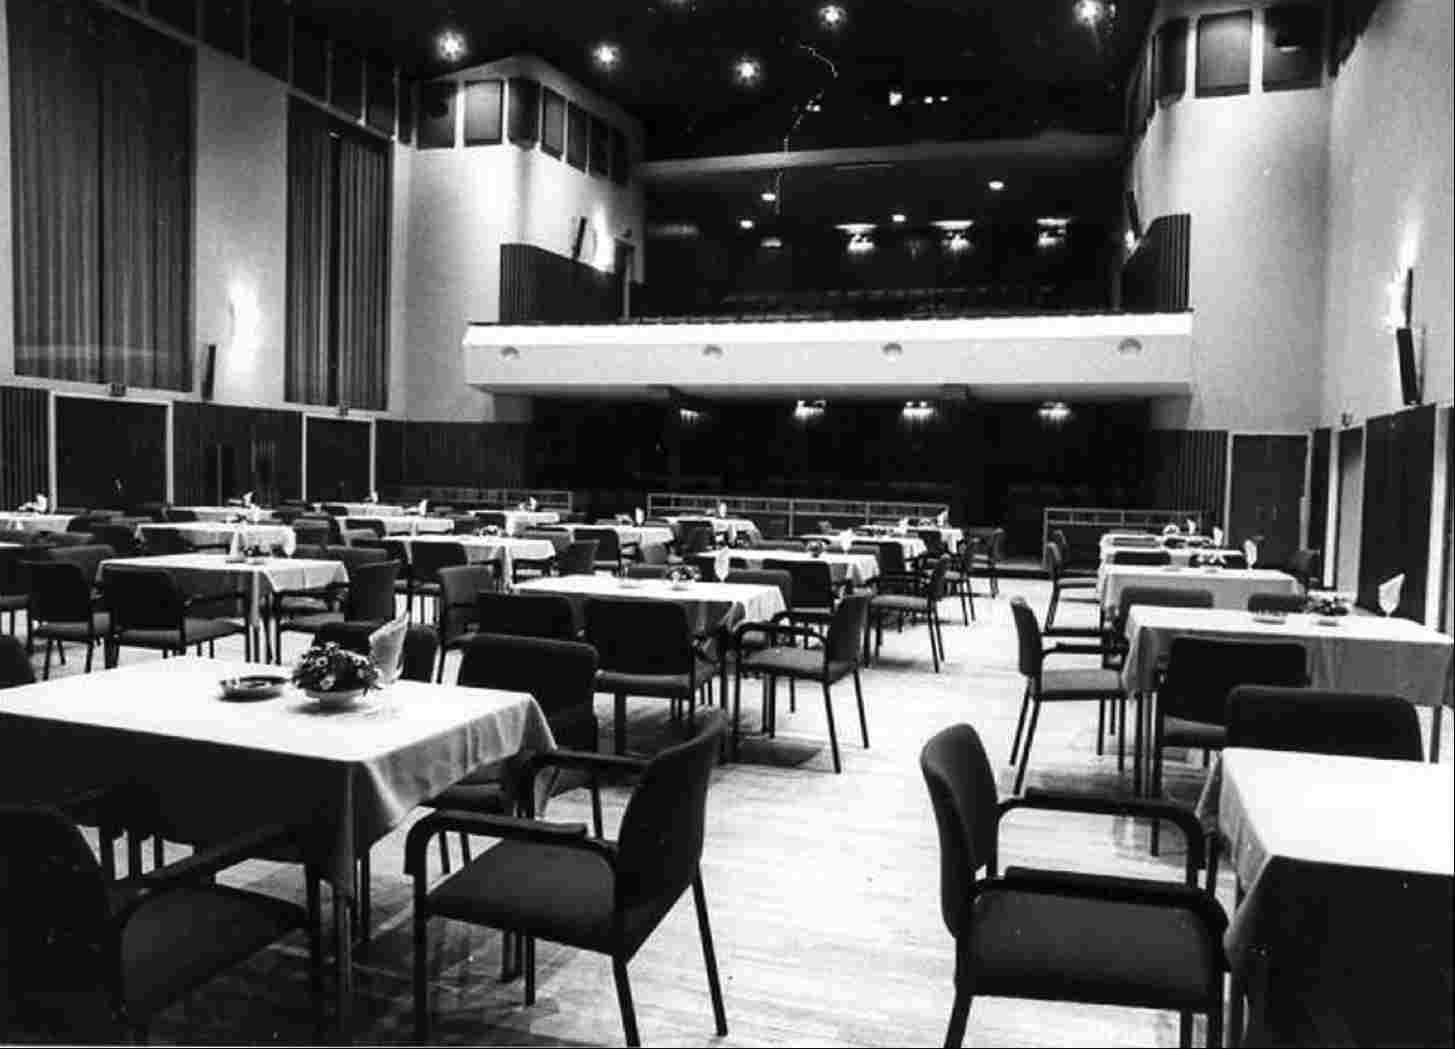 Interior of the auditorium of 't Voorhuys, 1991